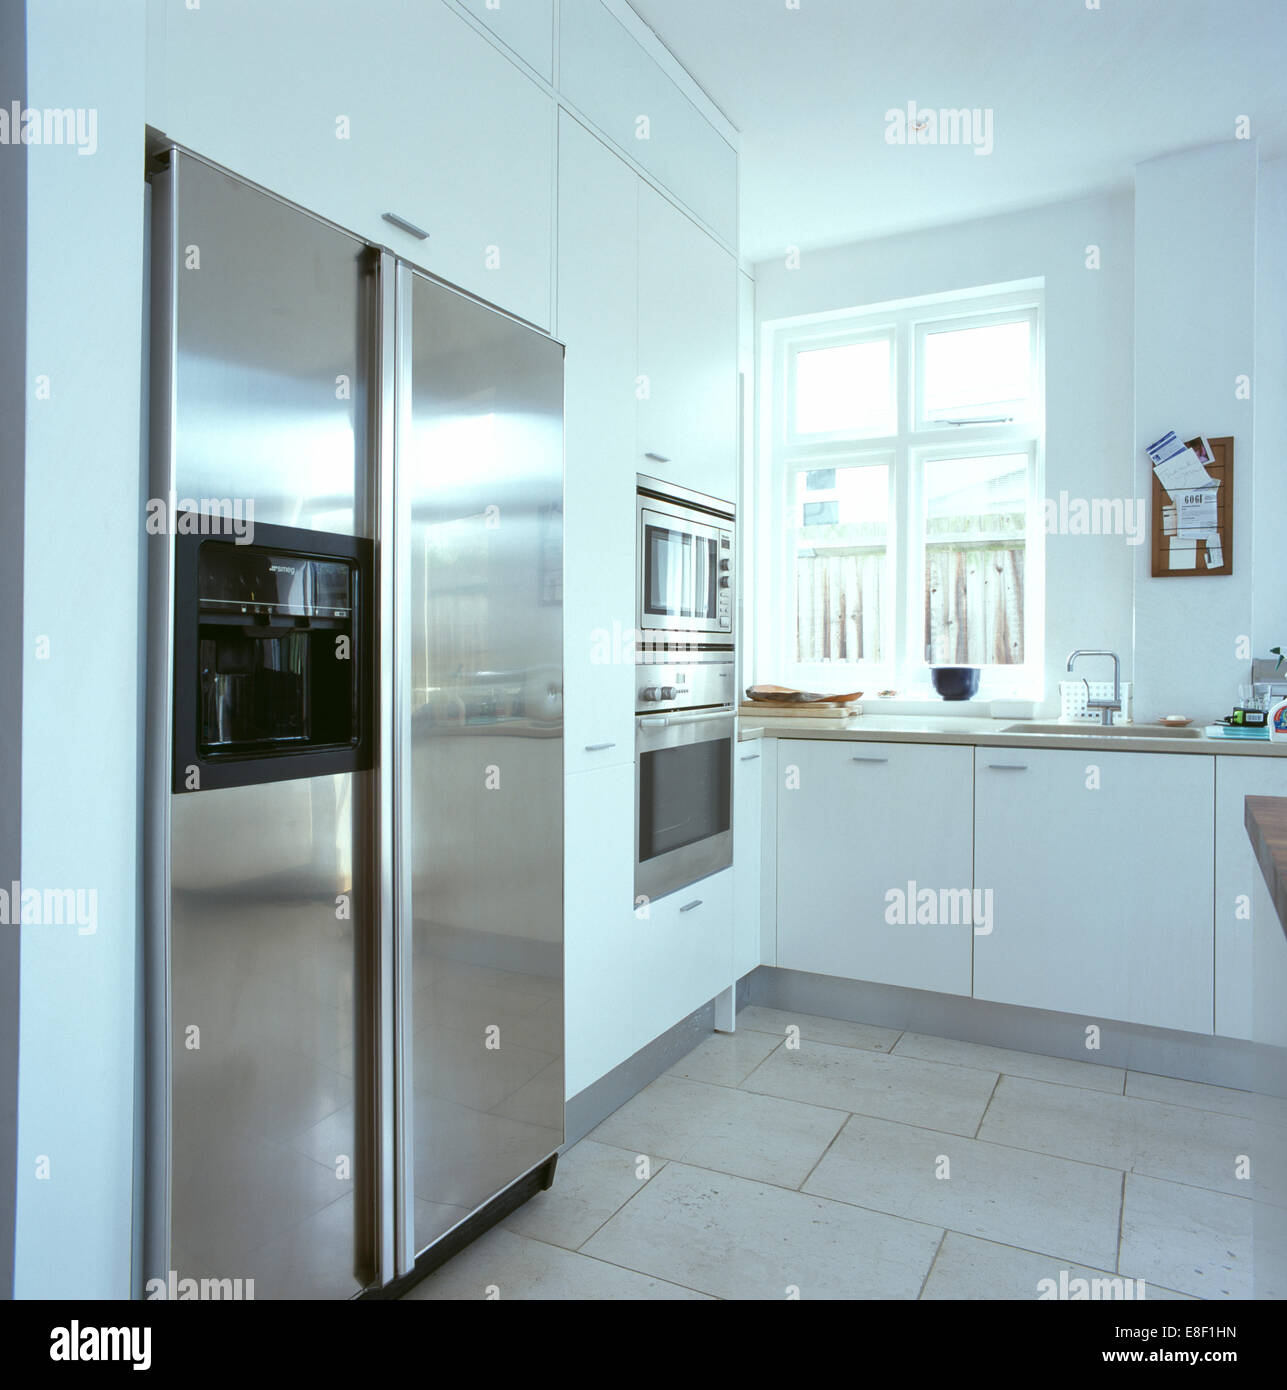 Modern Kitchen Refrigerators: Large American-style Stainless-steel Refrigerator In Modern White Stock Photo: 74089281